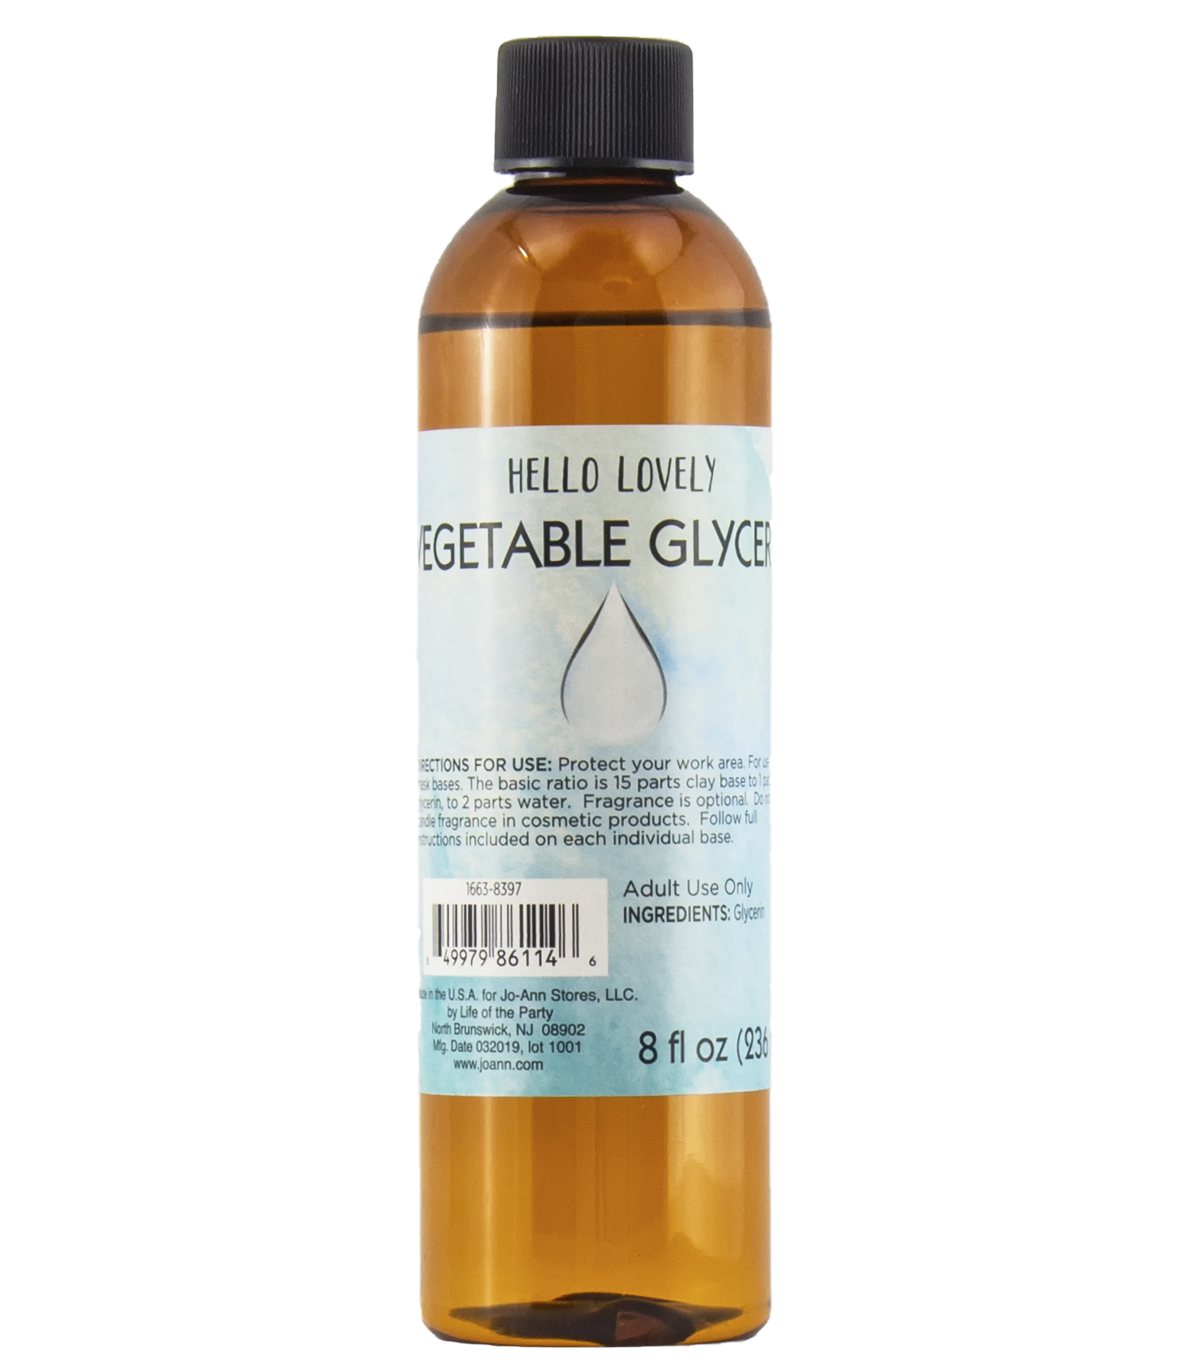 Hello Lovely Vegetable Glycerin 8oz